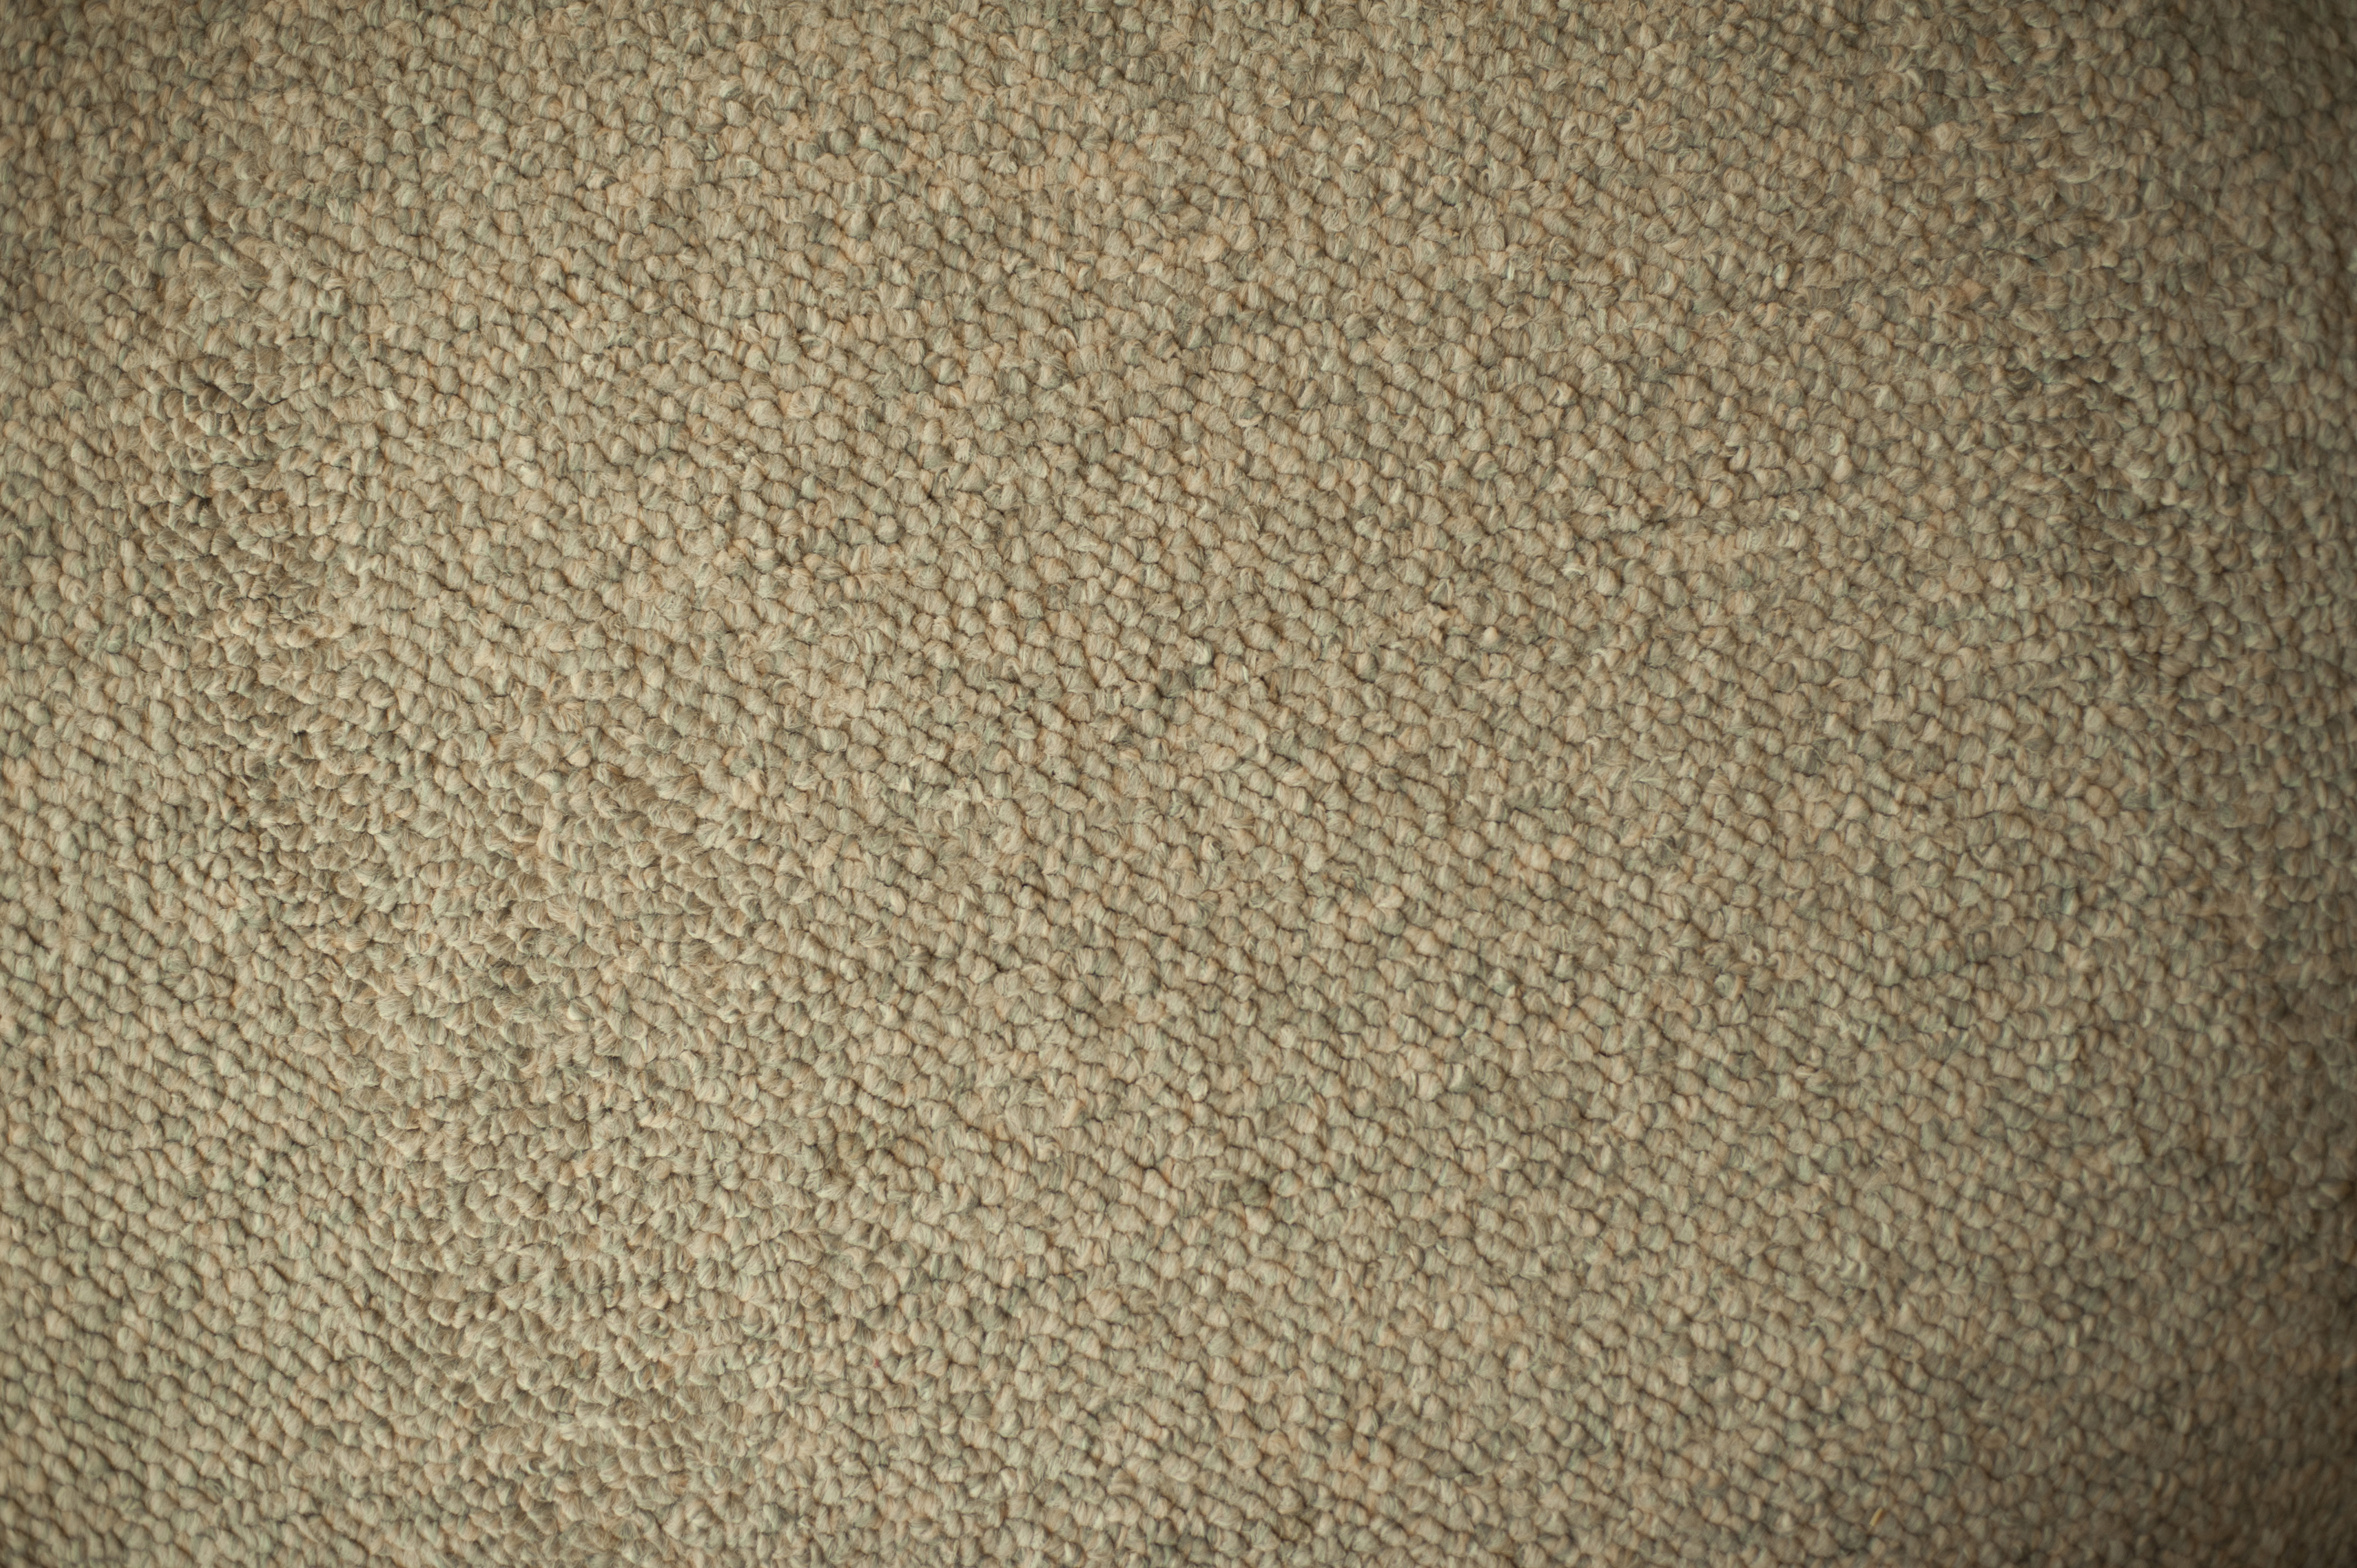 Details of Textured Beige Carpet for Wallpaper Backgrounds, Emphasizing Copy Space.